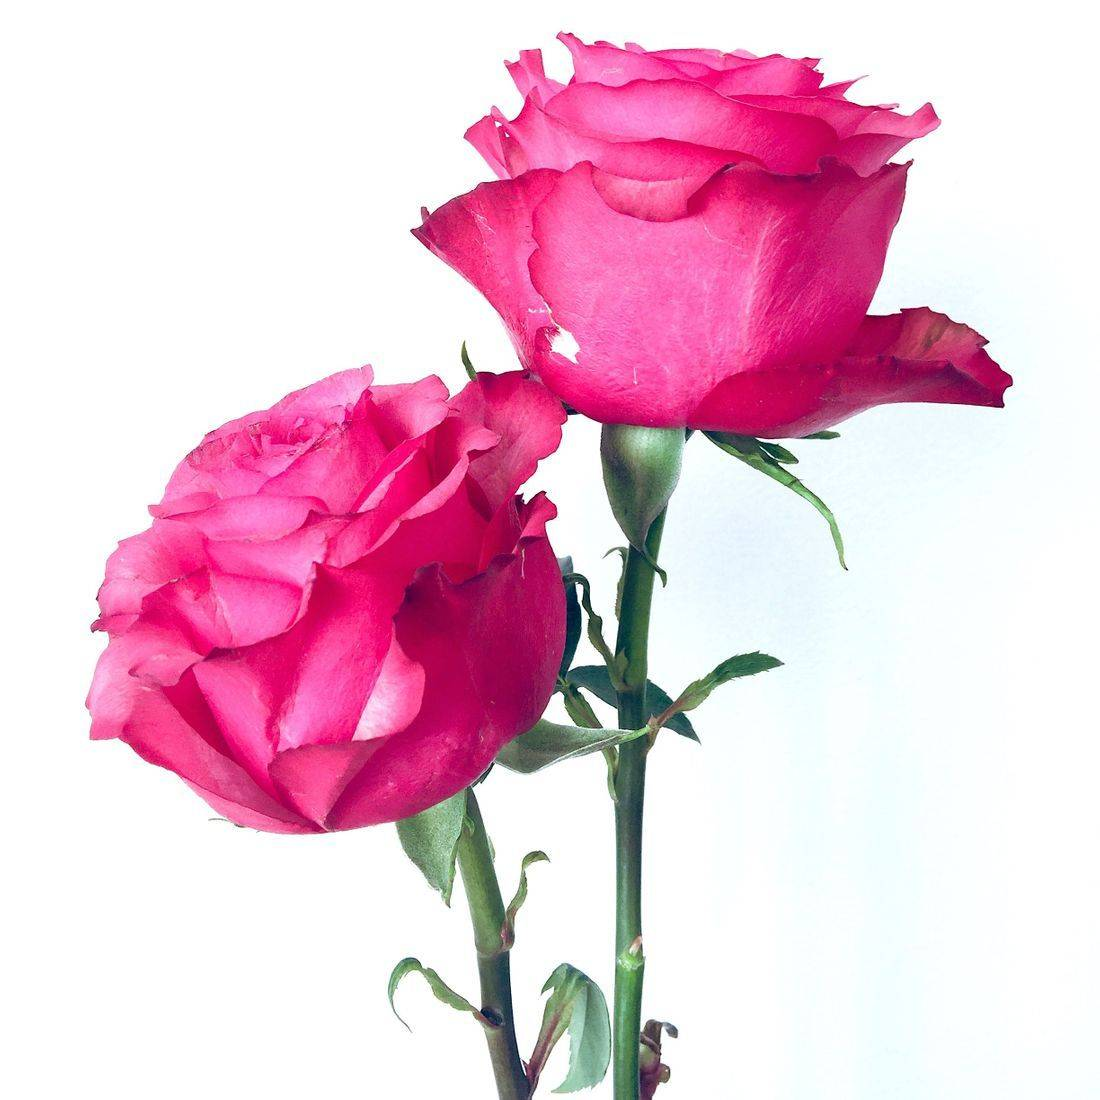 Rose Water, Rose Water Benefits, Rose Water Uses in Skincare, Rose Water Properties Uses Benefits